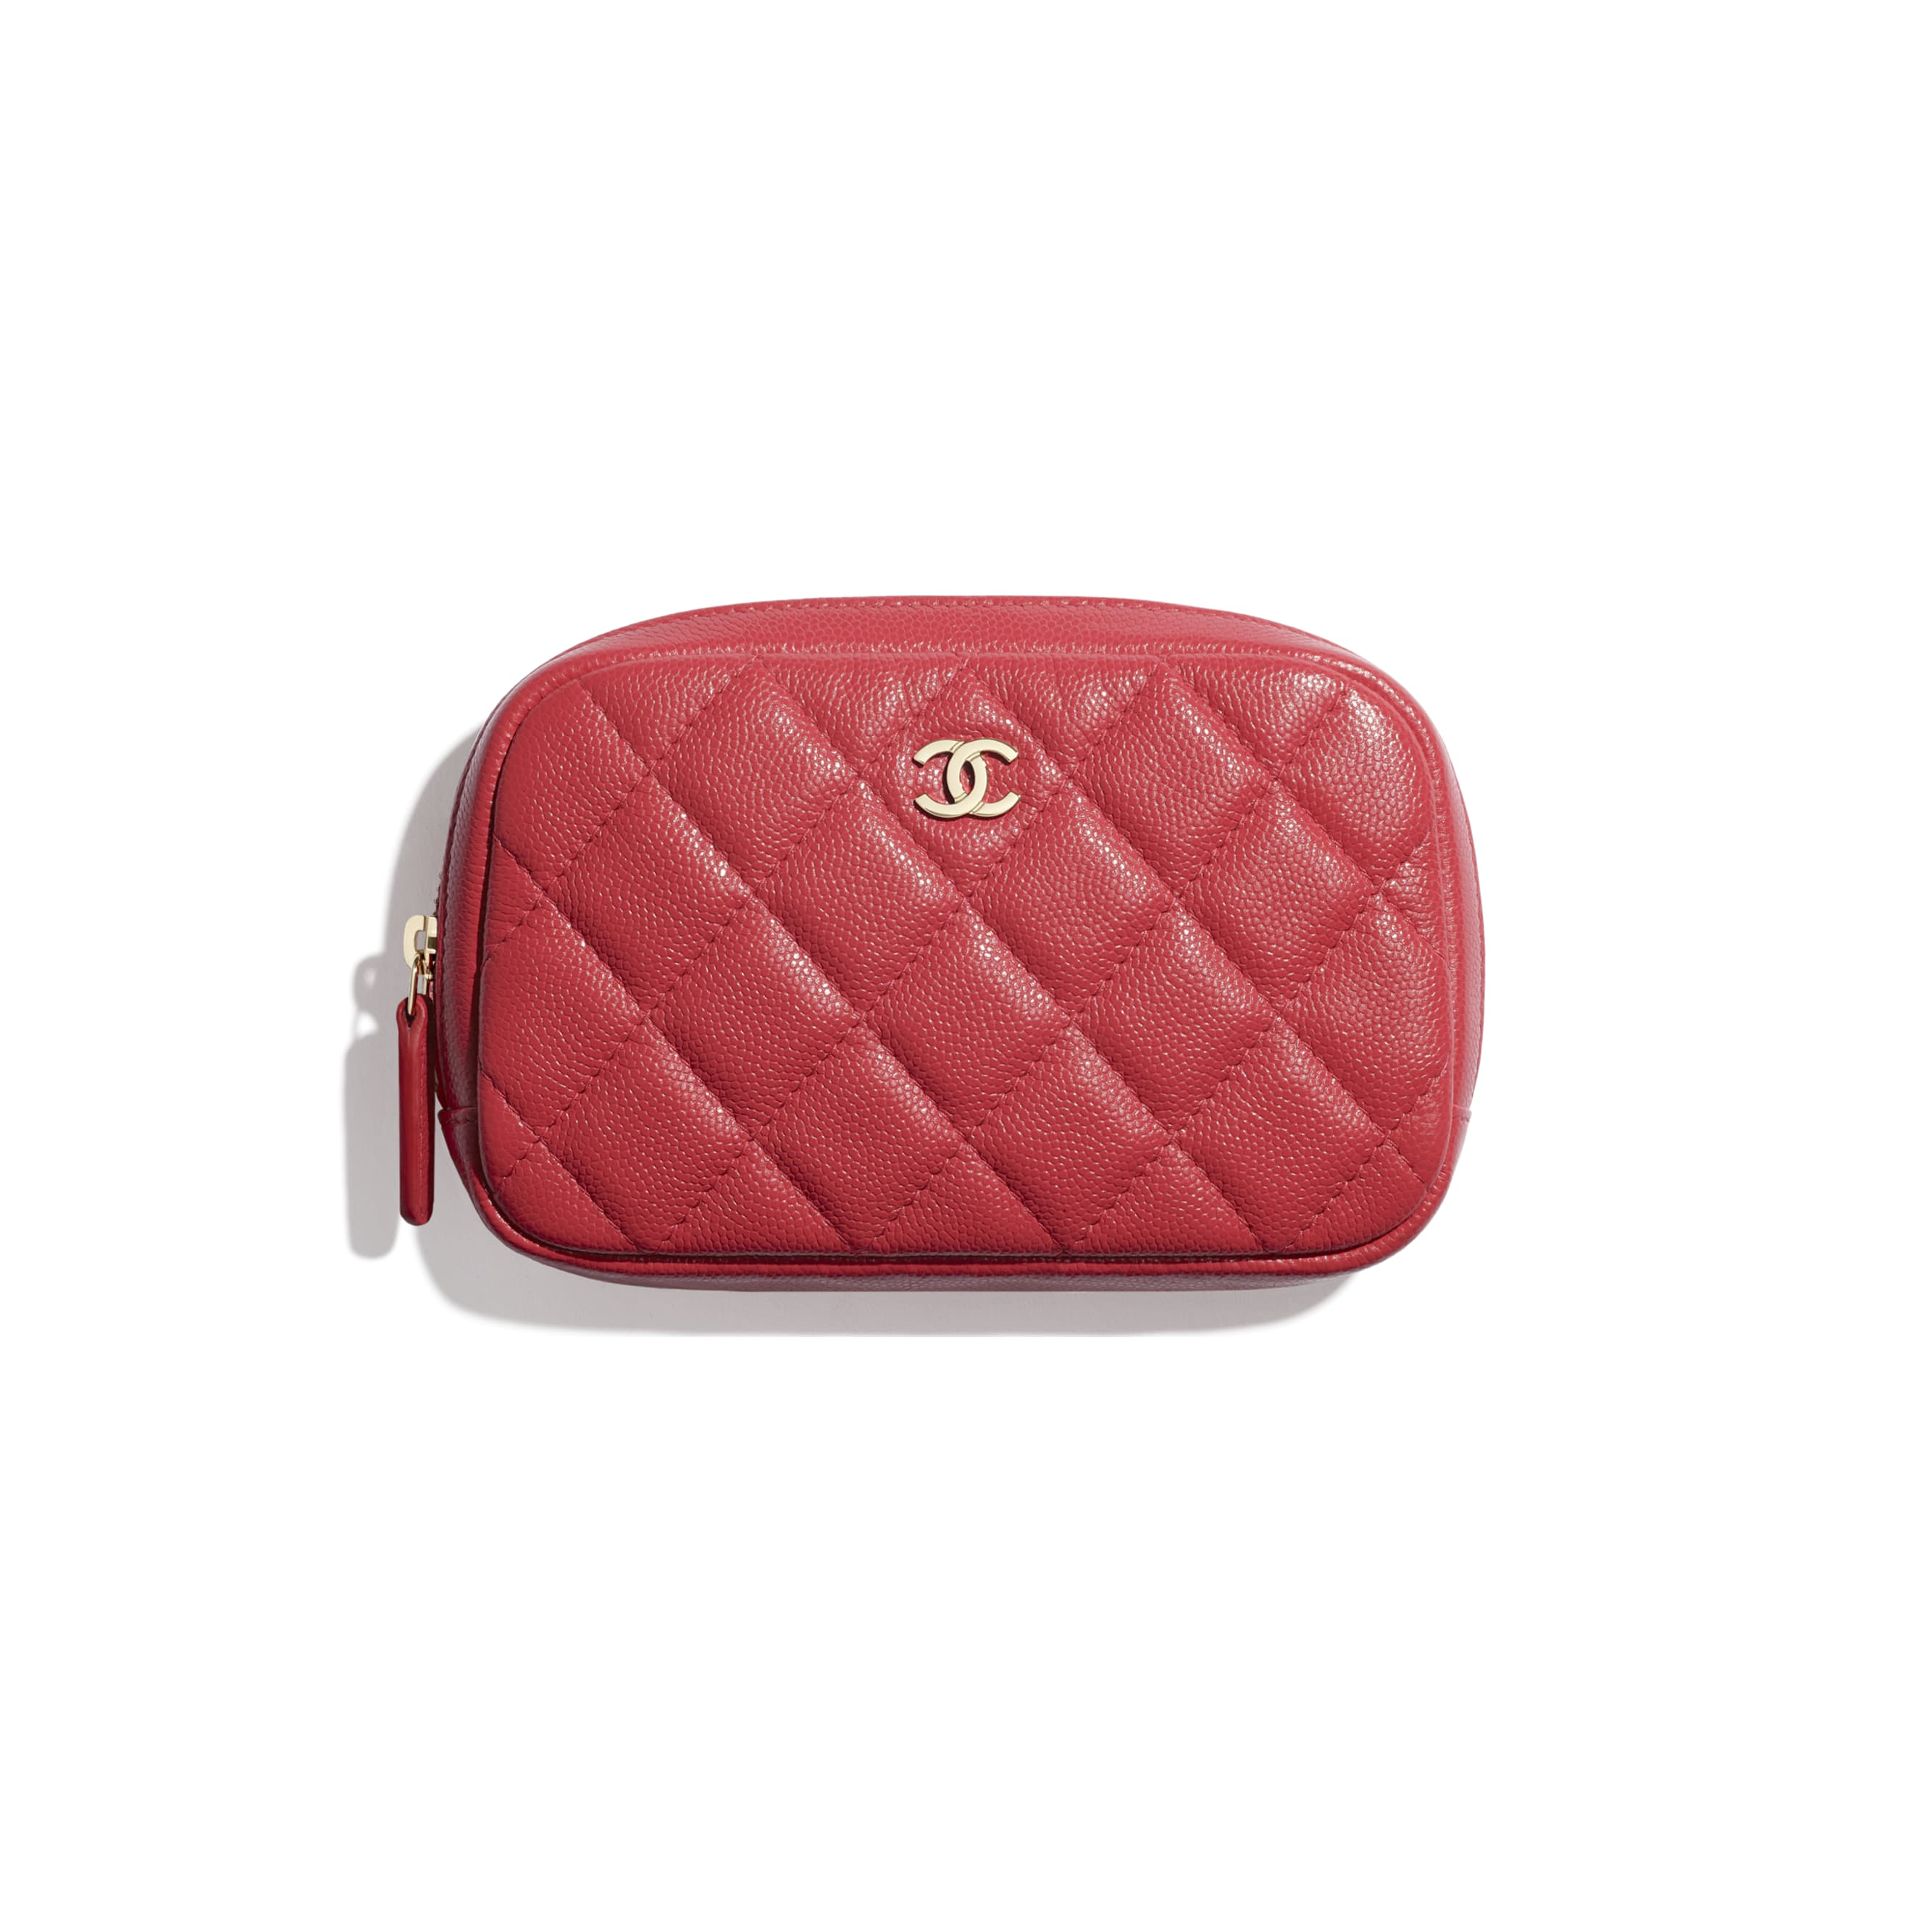 Classic Case - Red - Grained Shiny Calfskin & Gold-Tone Metal - CHANEL - Default view - see standard sized version